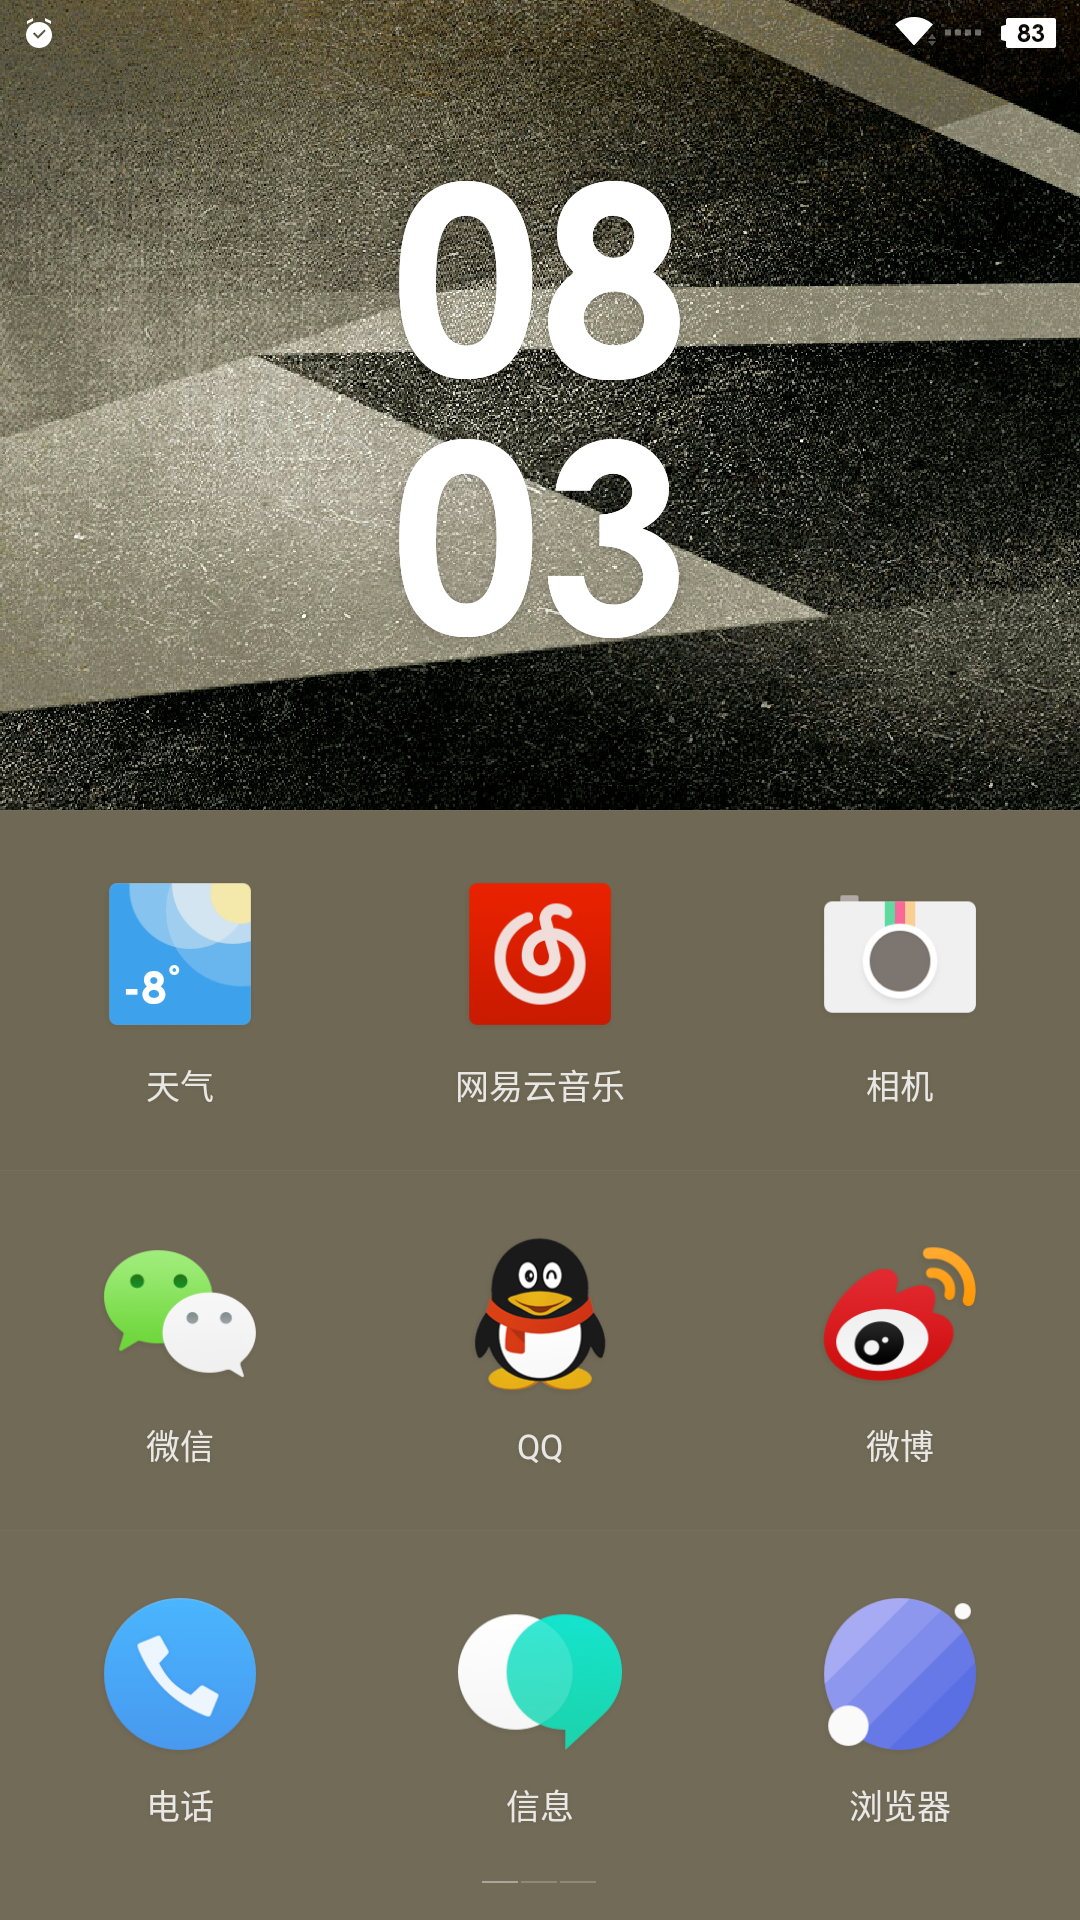 Screenshot_2015-11-26-08-03-21.png